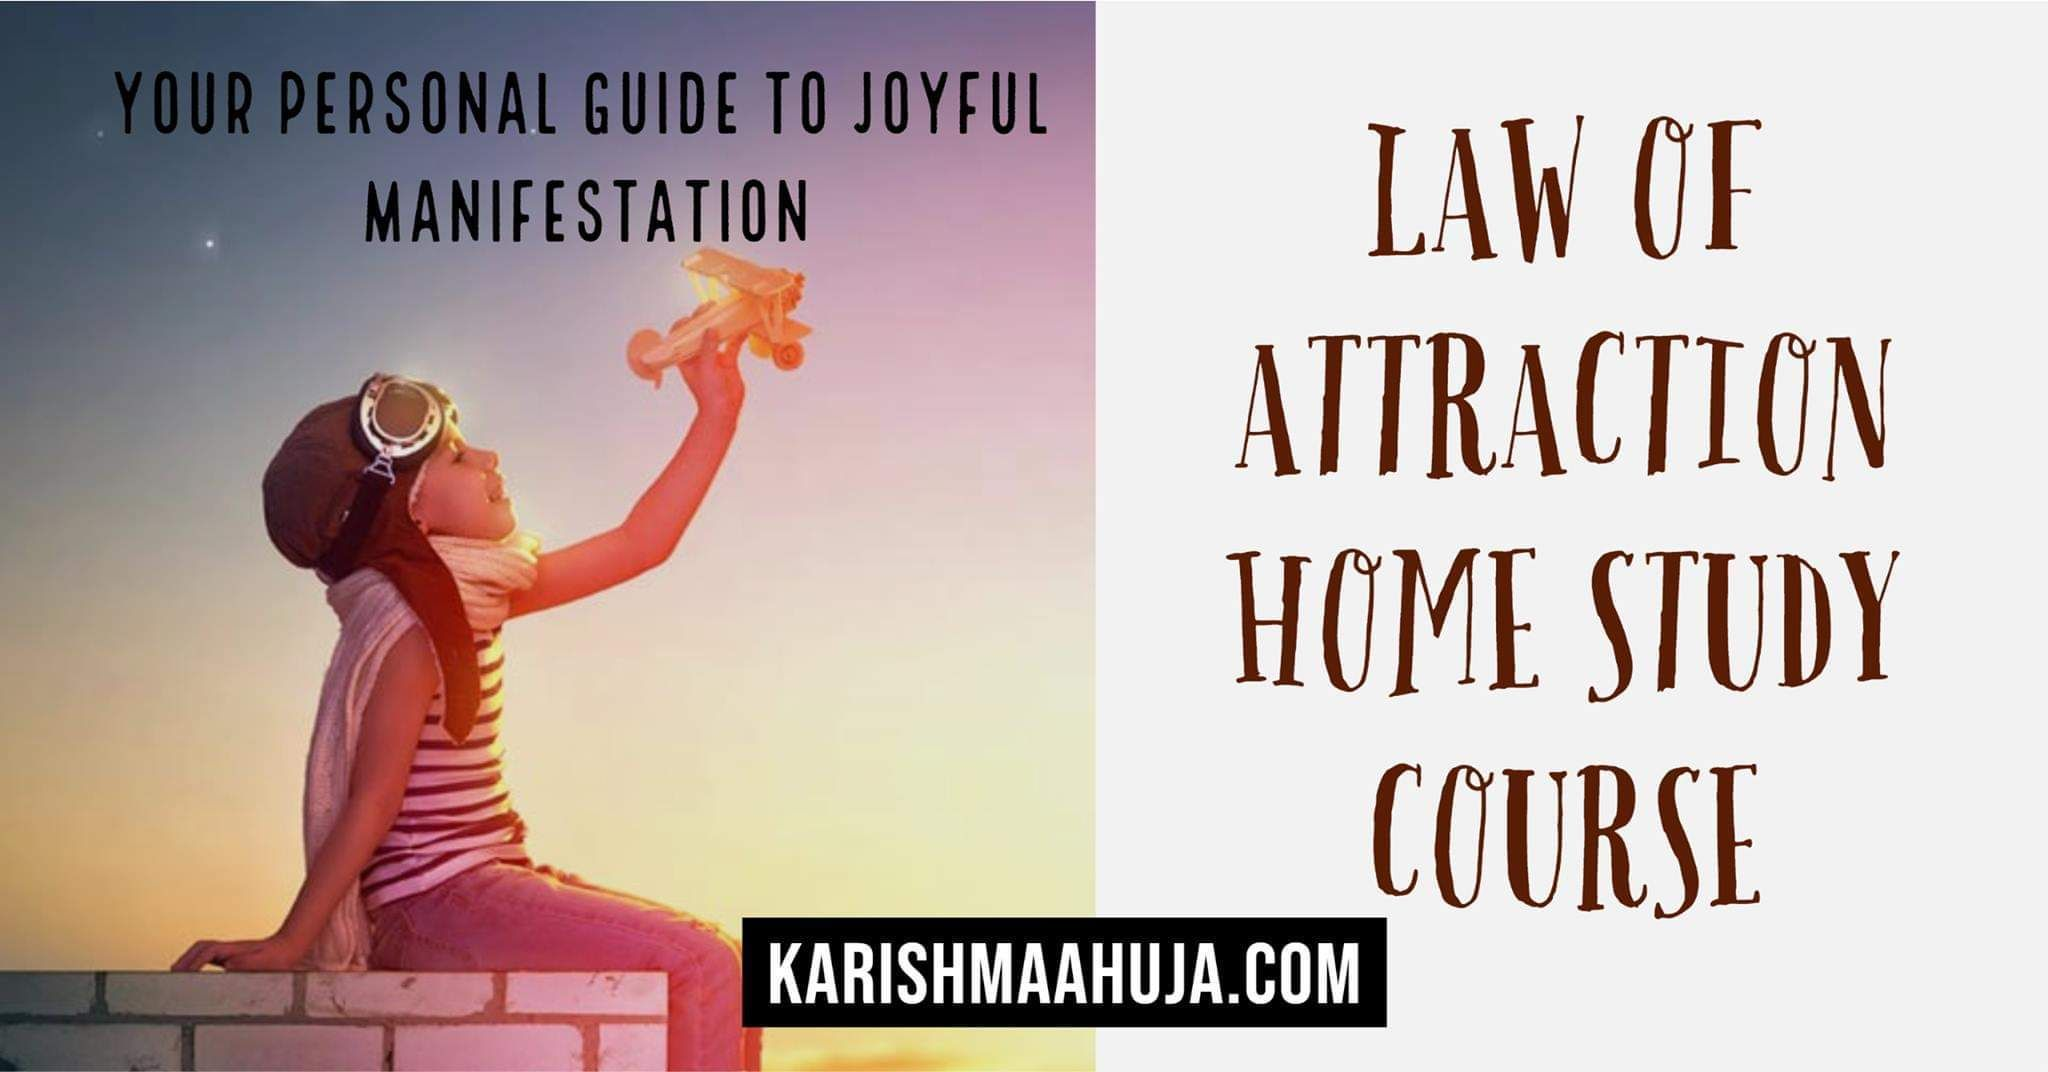 Law Of Attraction Home Study Study Course Law Of Attraction Home Study